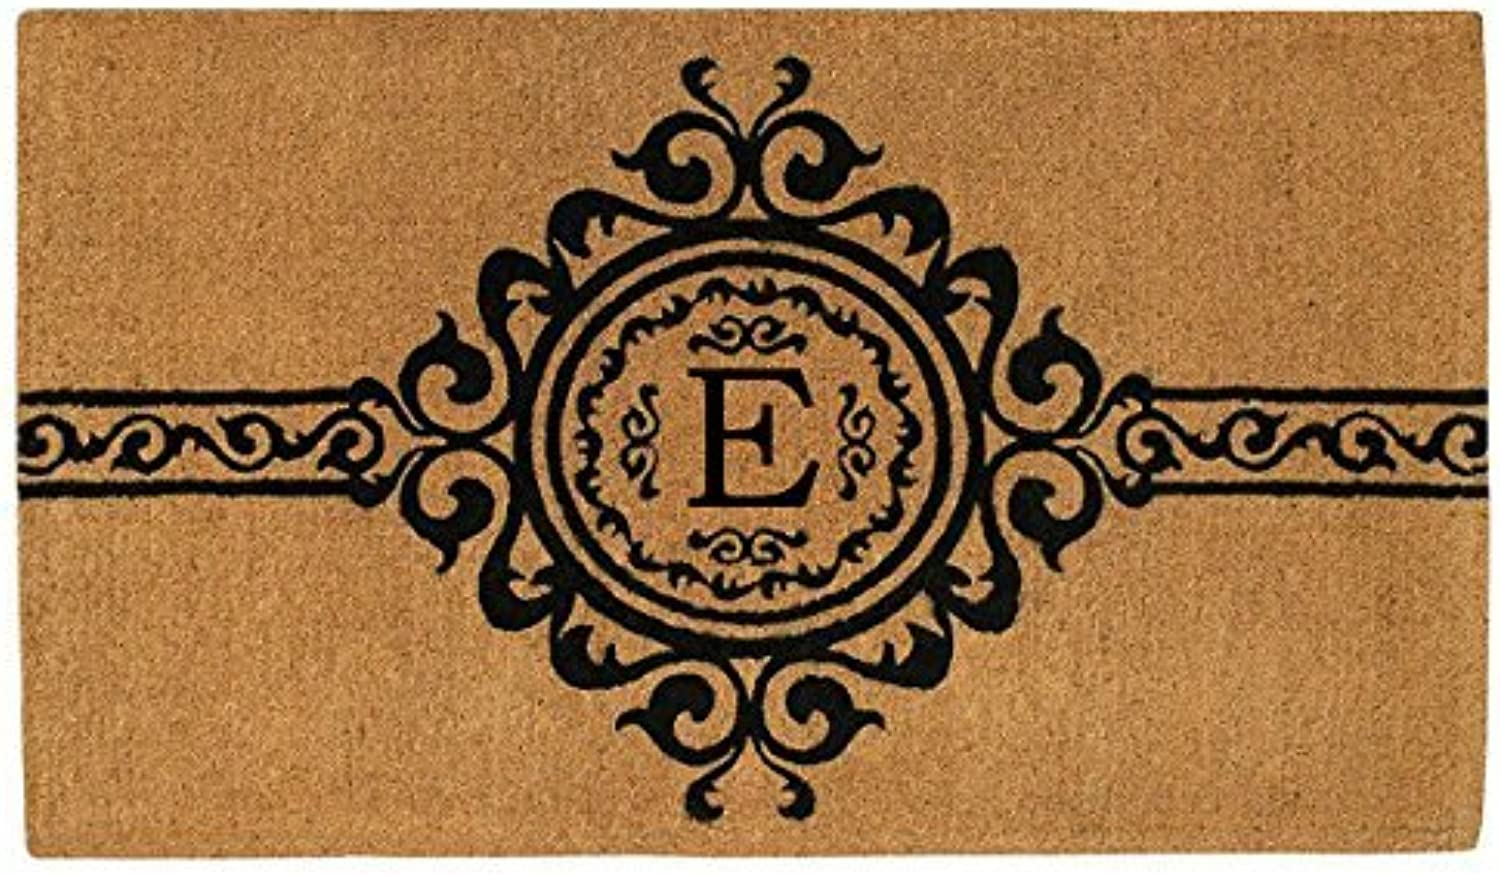 Home & More 180071830E Garbo Extra-Thick Doormat, 18  x 30  x 1.50 , Monogrammed Letter E, Natural Black